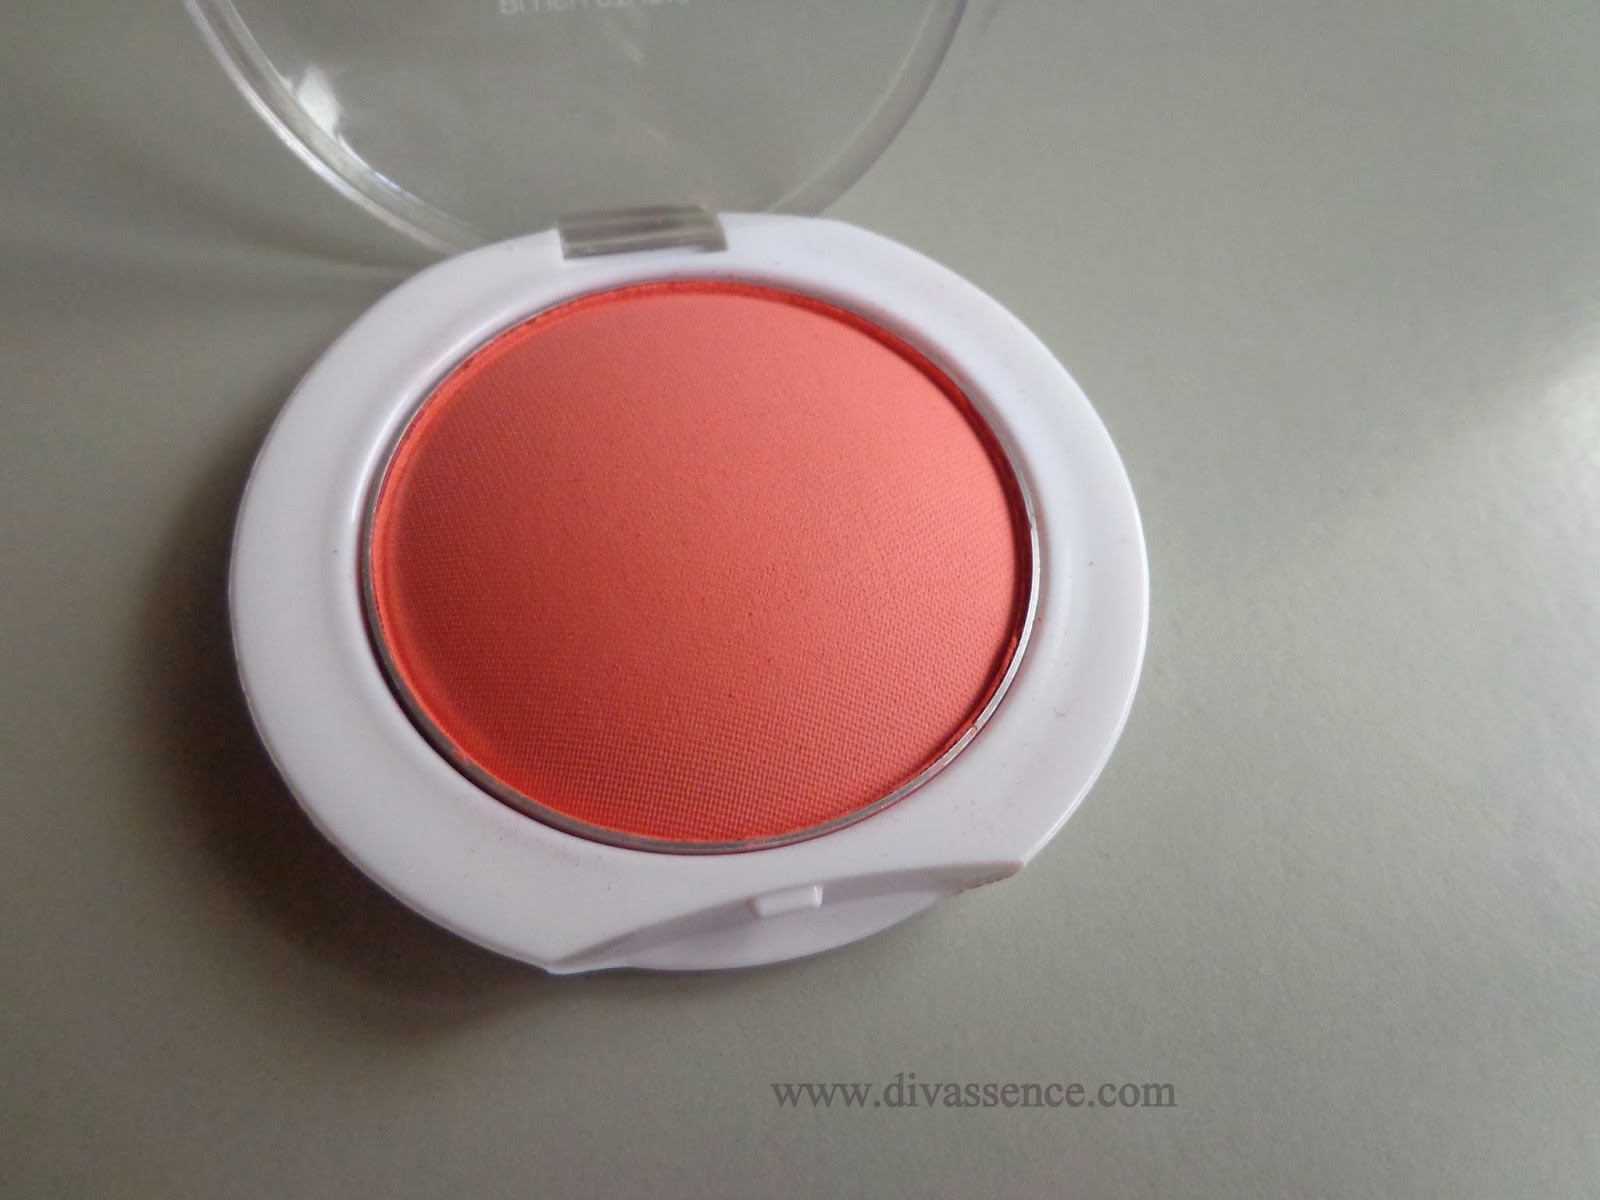 Maybelline Cheeky Glow Blush In Fresh Coral Review Swatches Color Show On Divassence